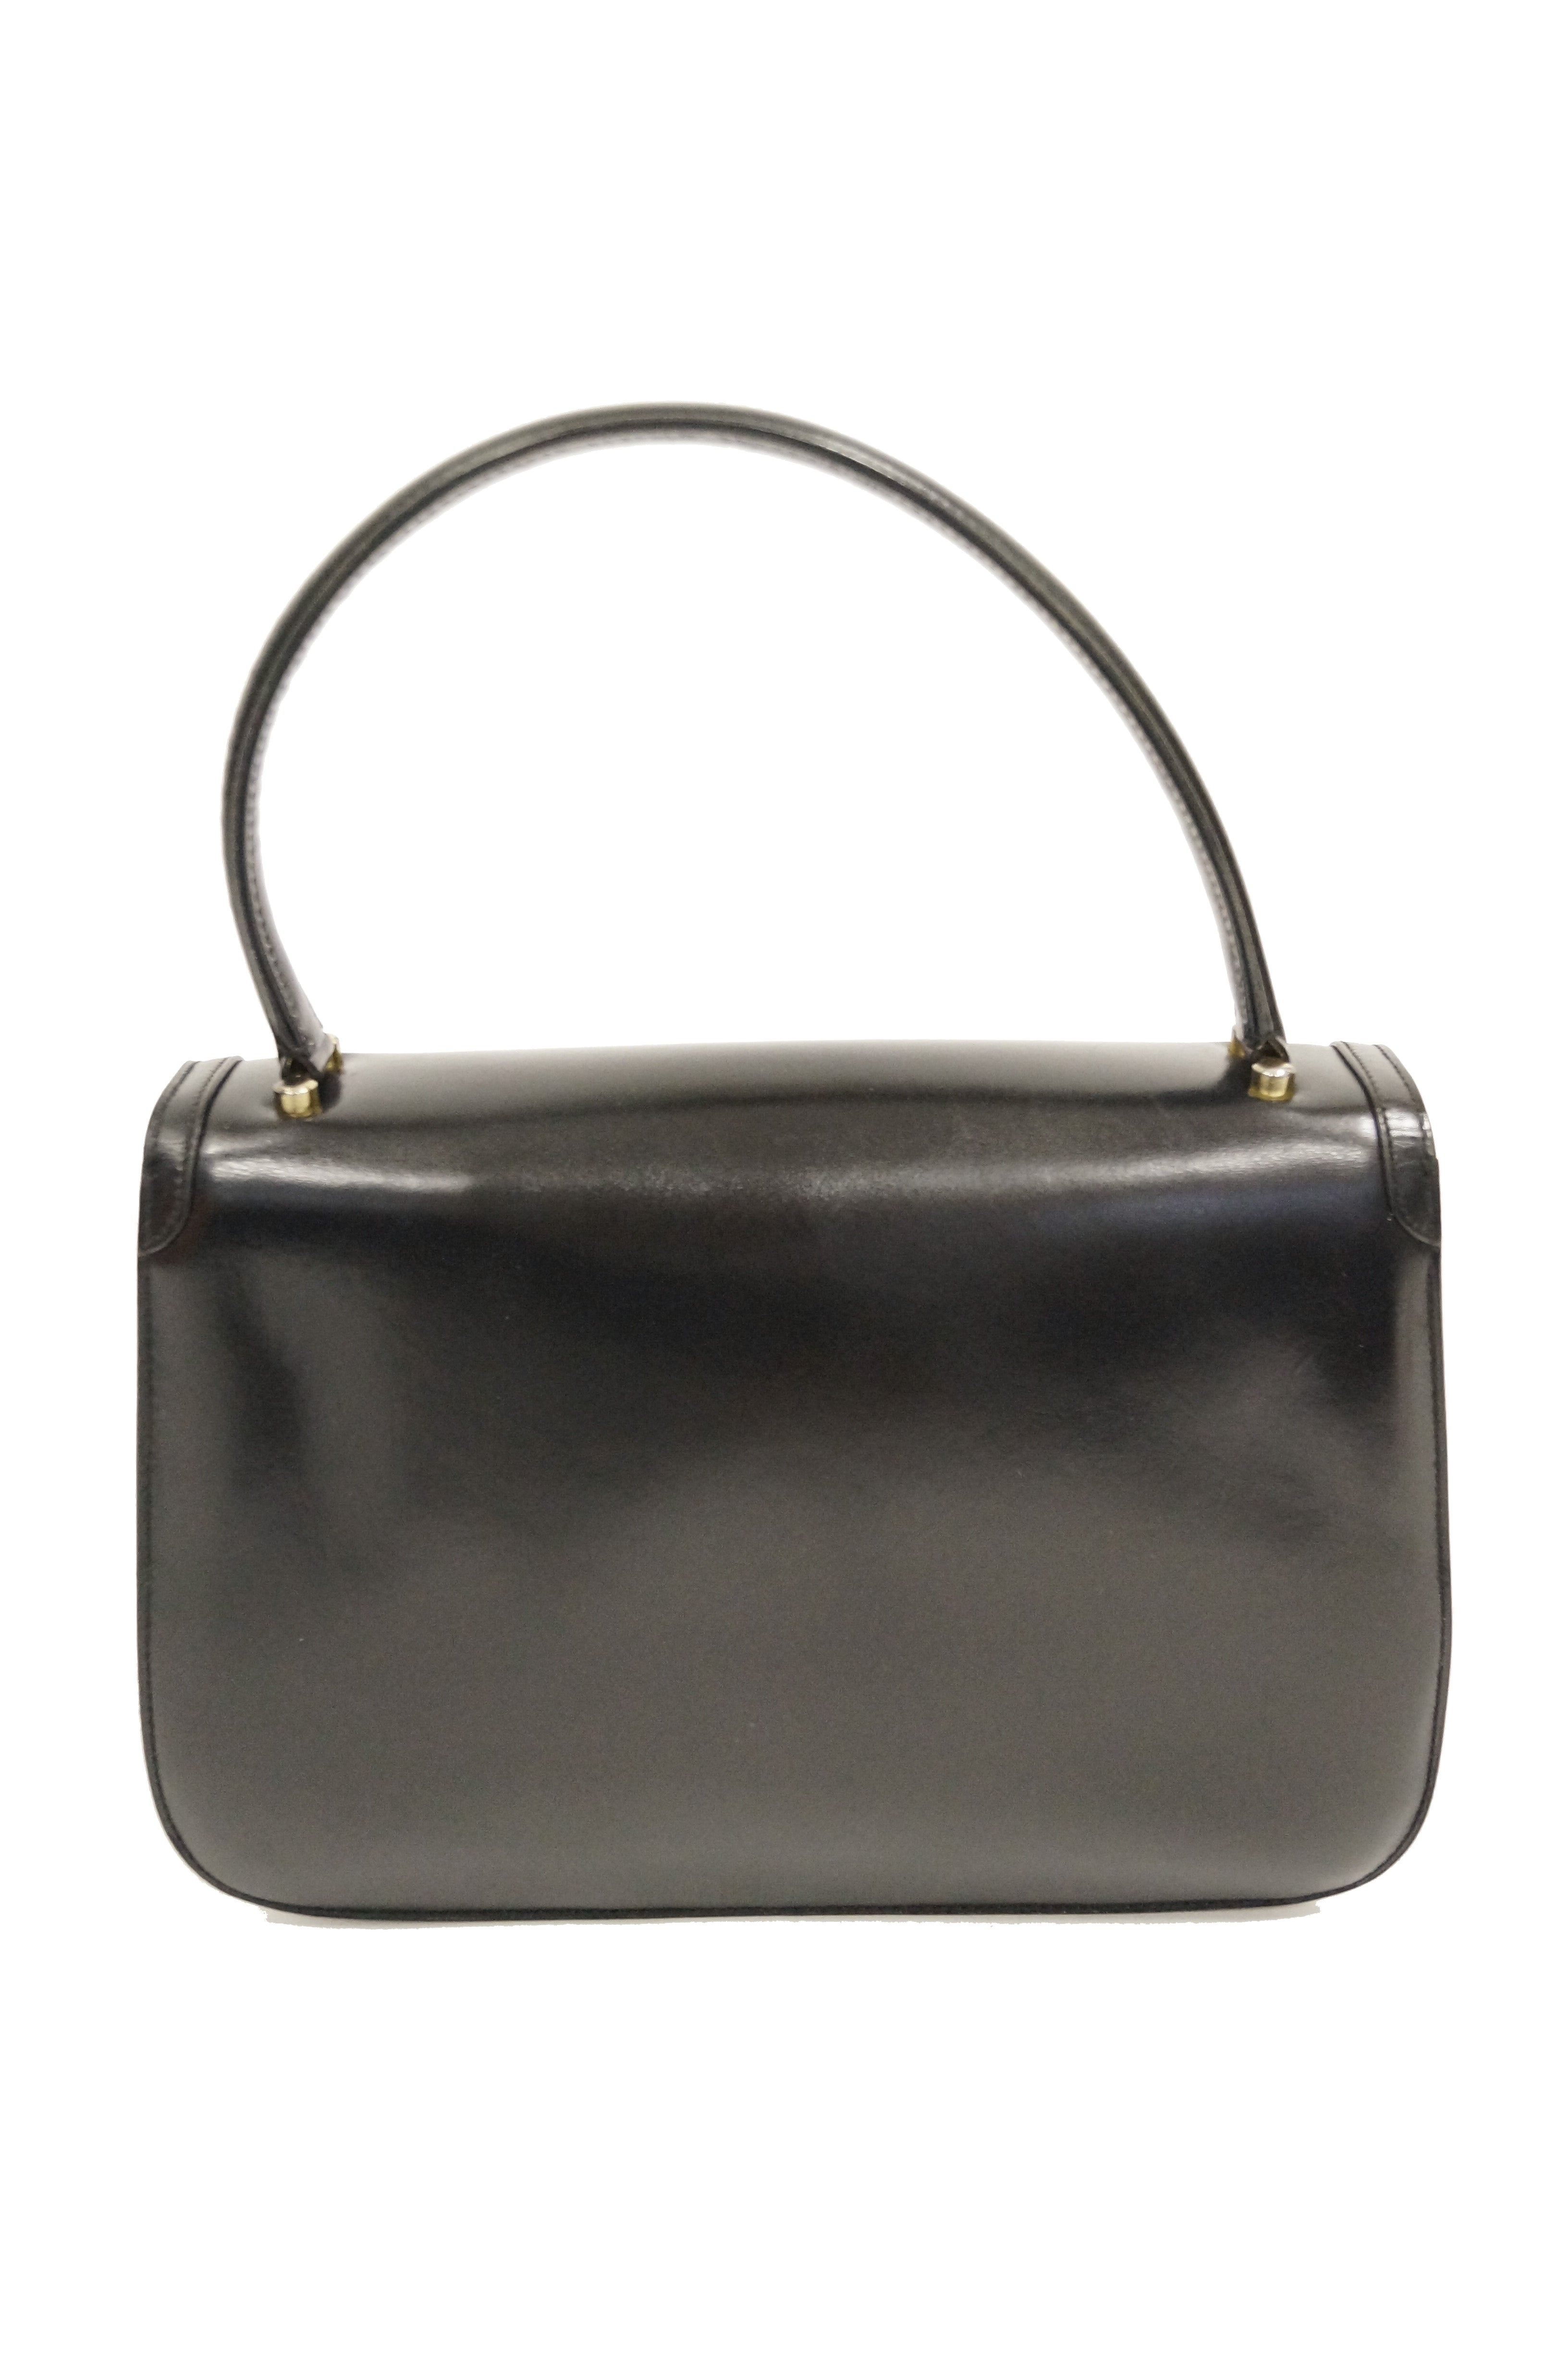 b793ab9fbb1 1960s Gucci Black Leather Top Handle Handbag with Crescent Lock For Sale at  1stdibs